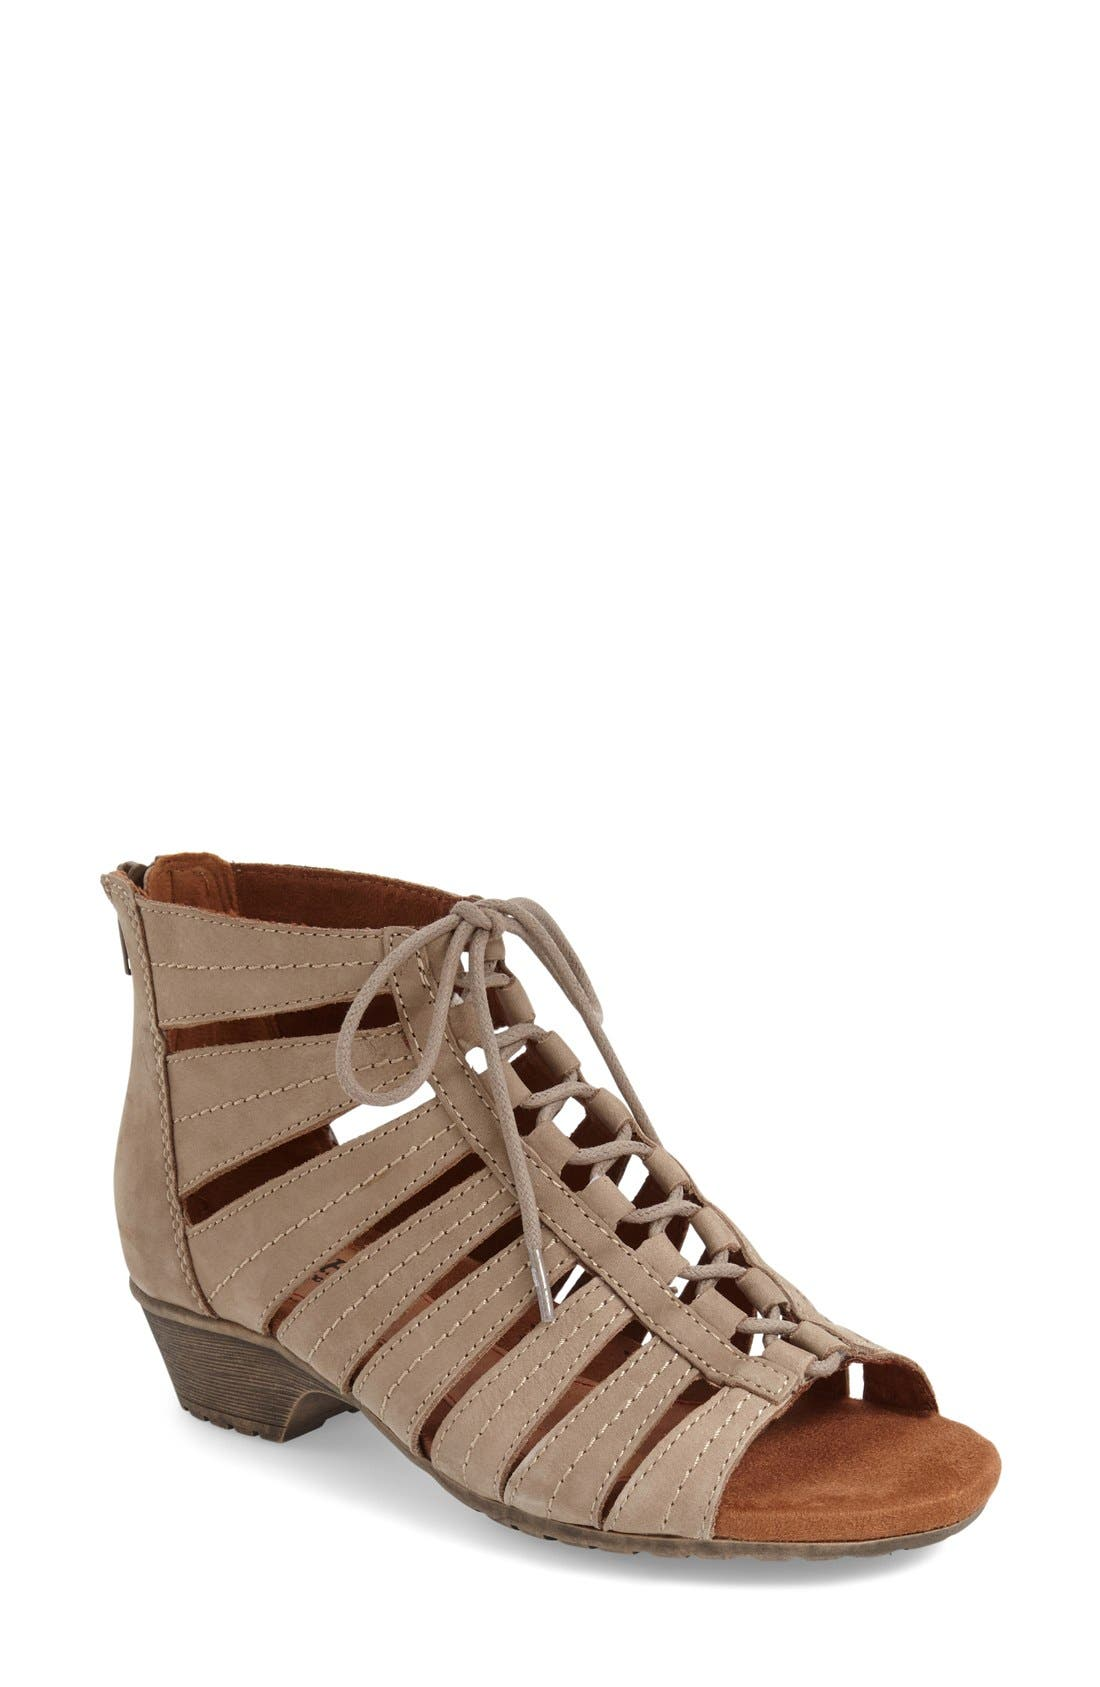 'Gabby' Lace-Up Sandal,                             Main thumbnail 6, color,